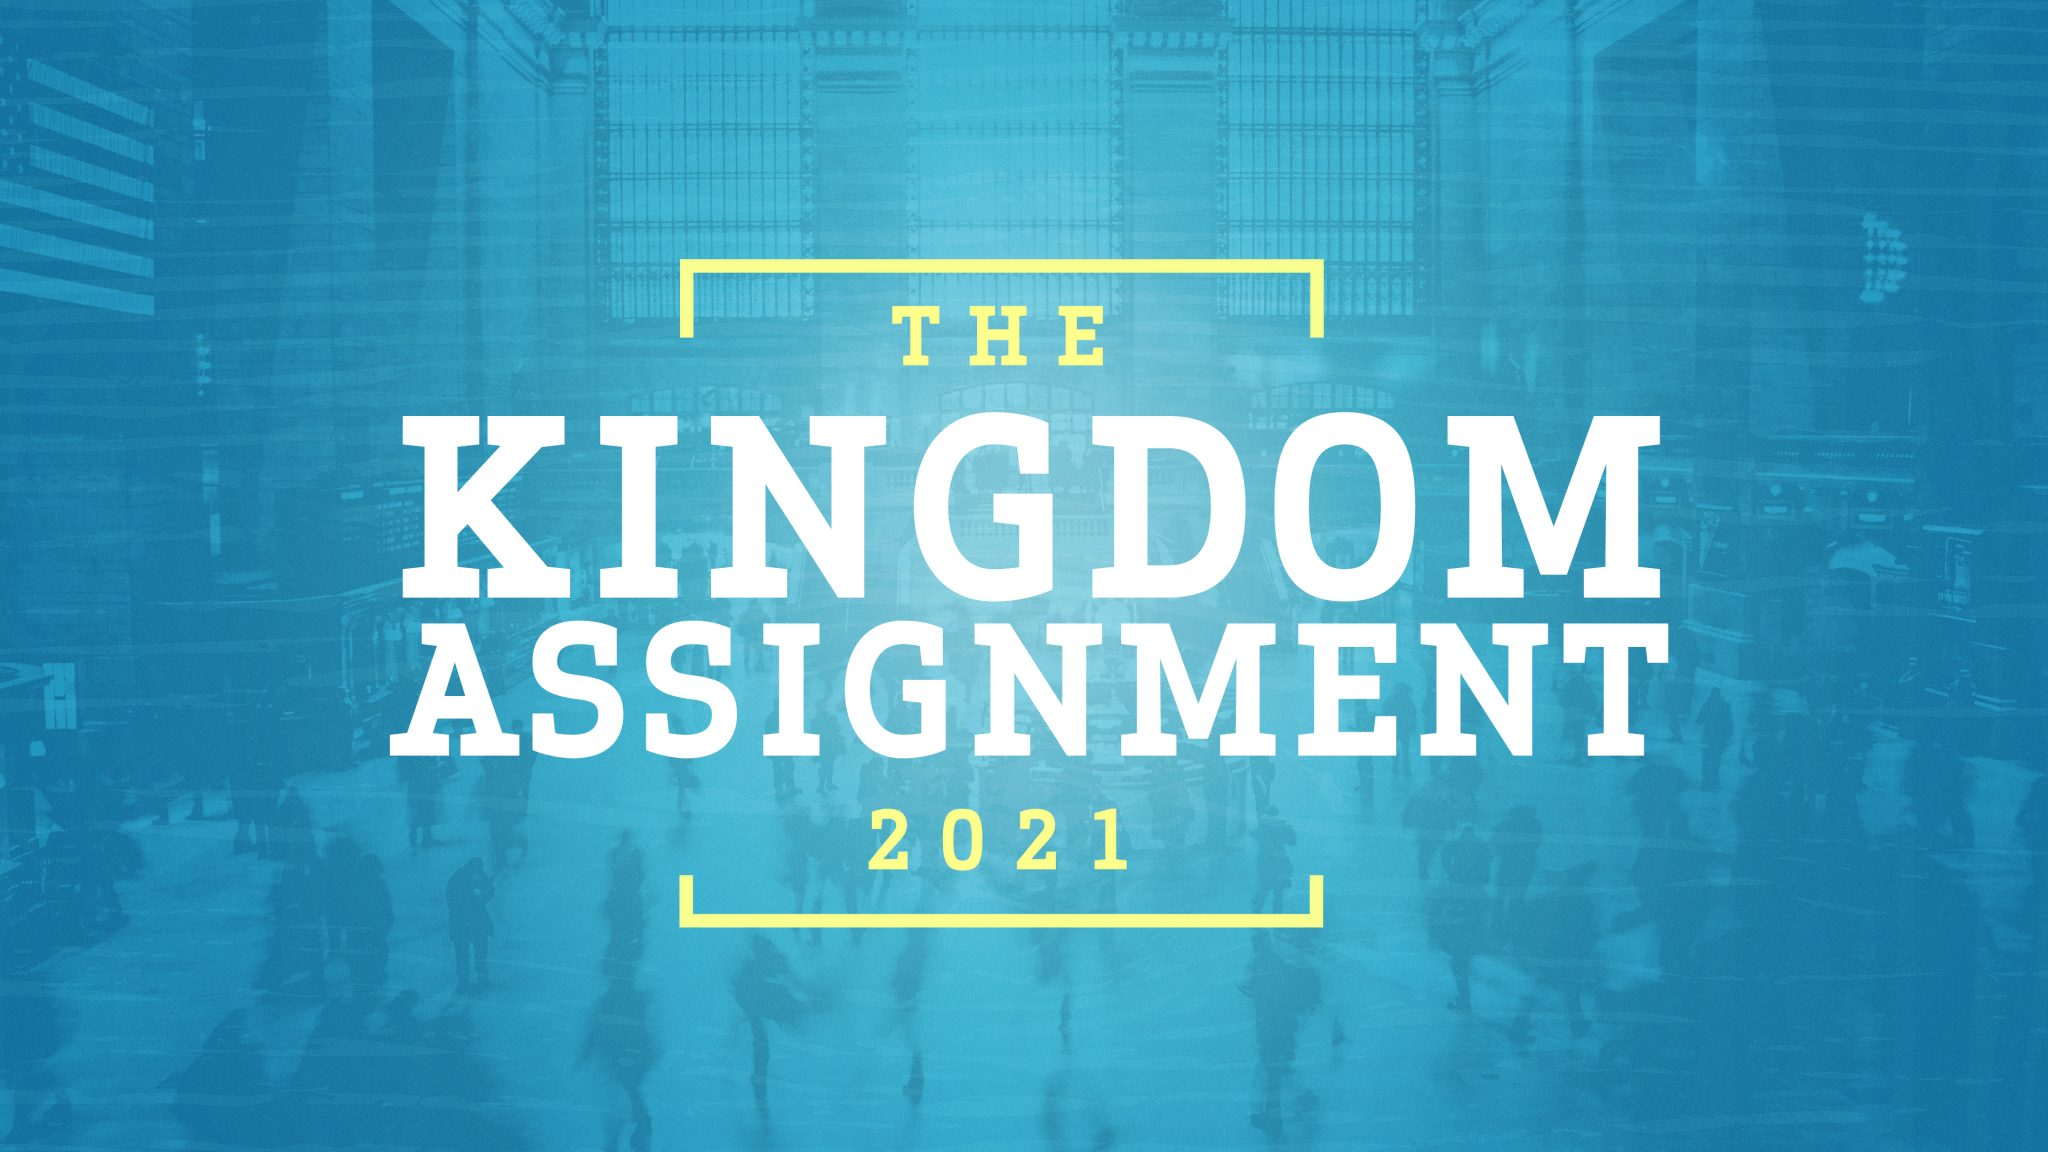 The Kingdom Assignment 2021